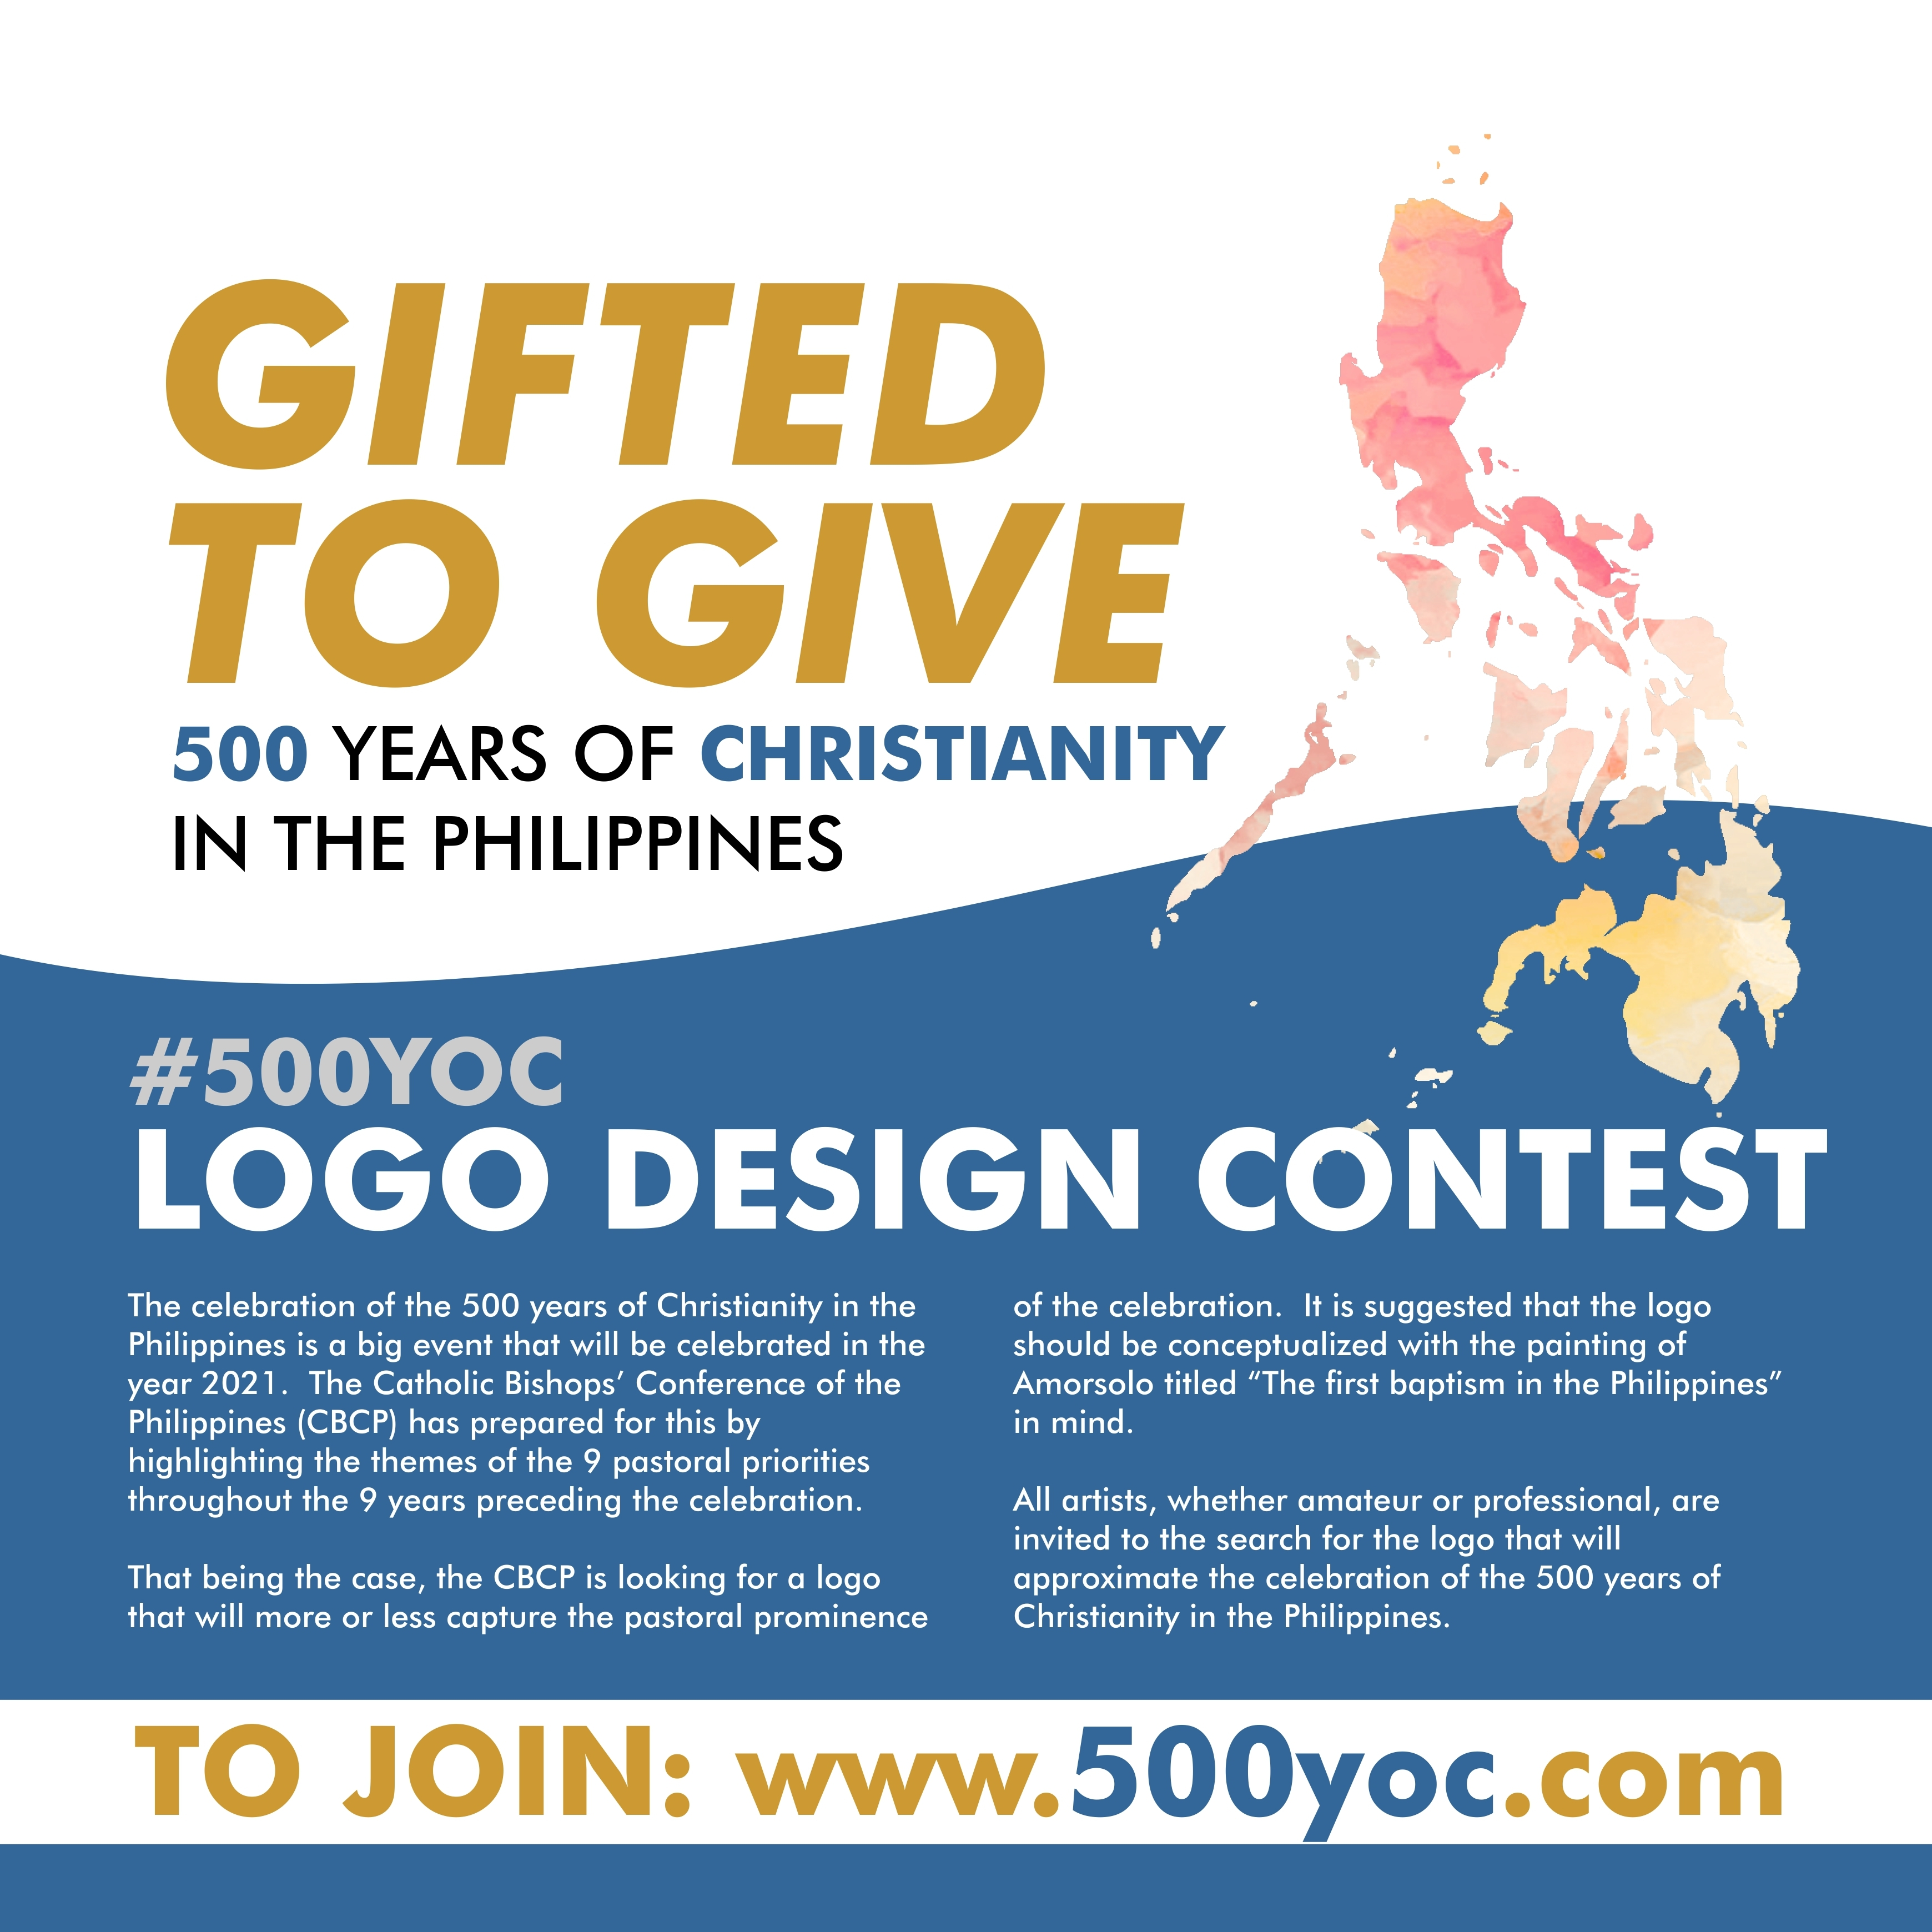 500 YOC Logo Design Contest